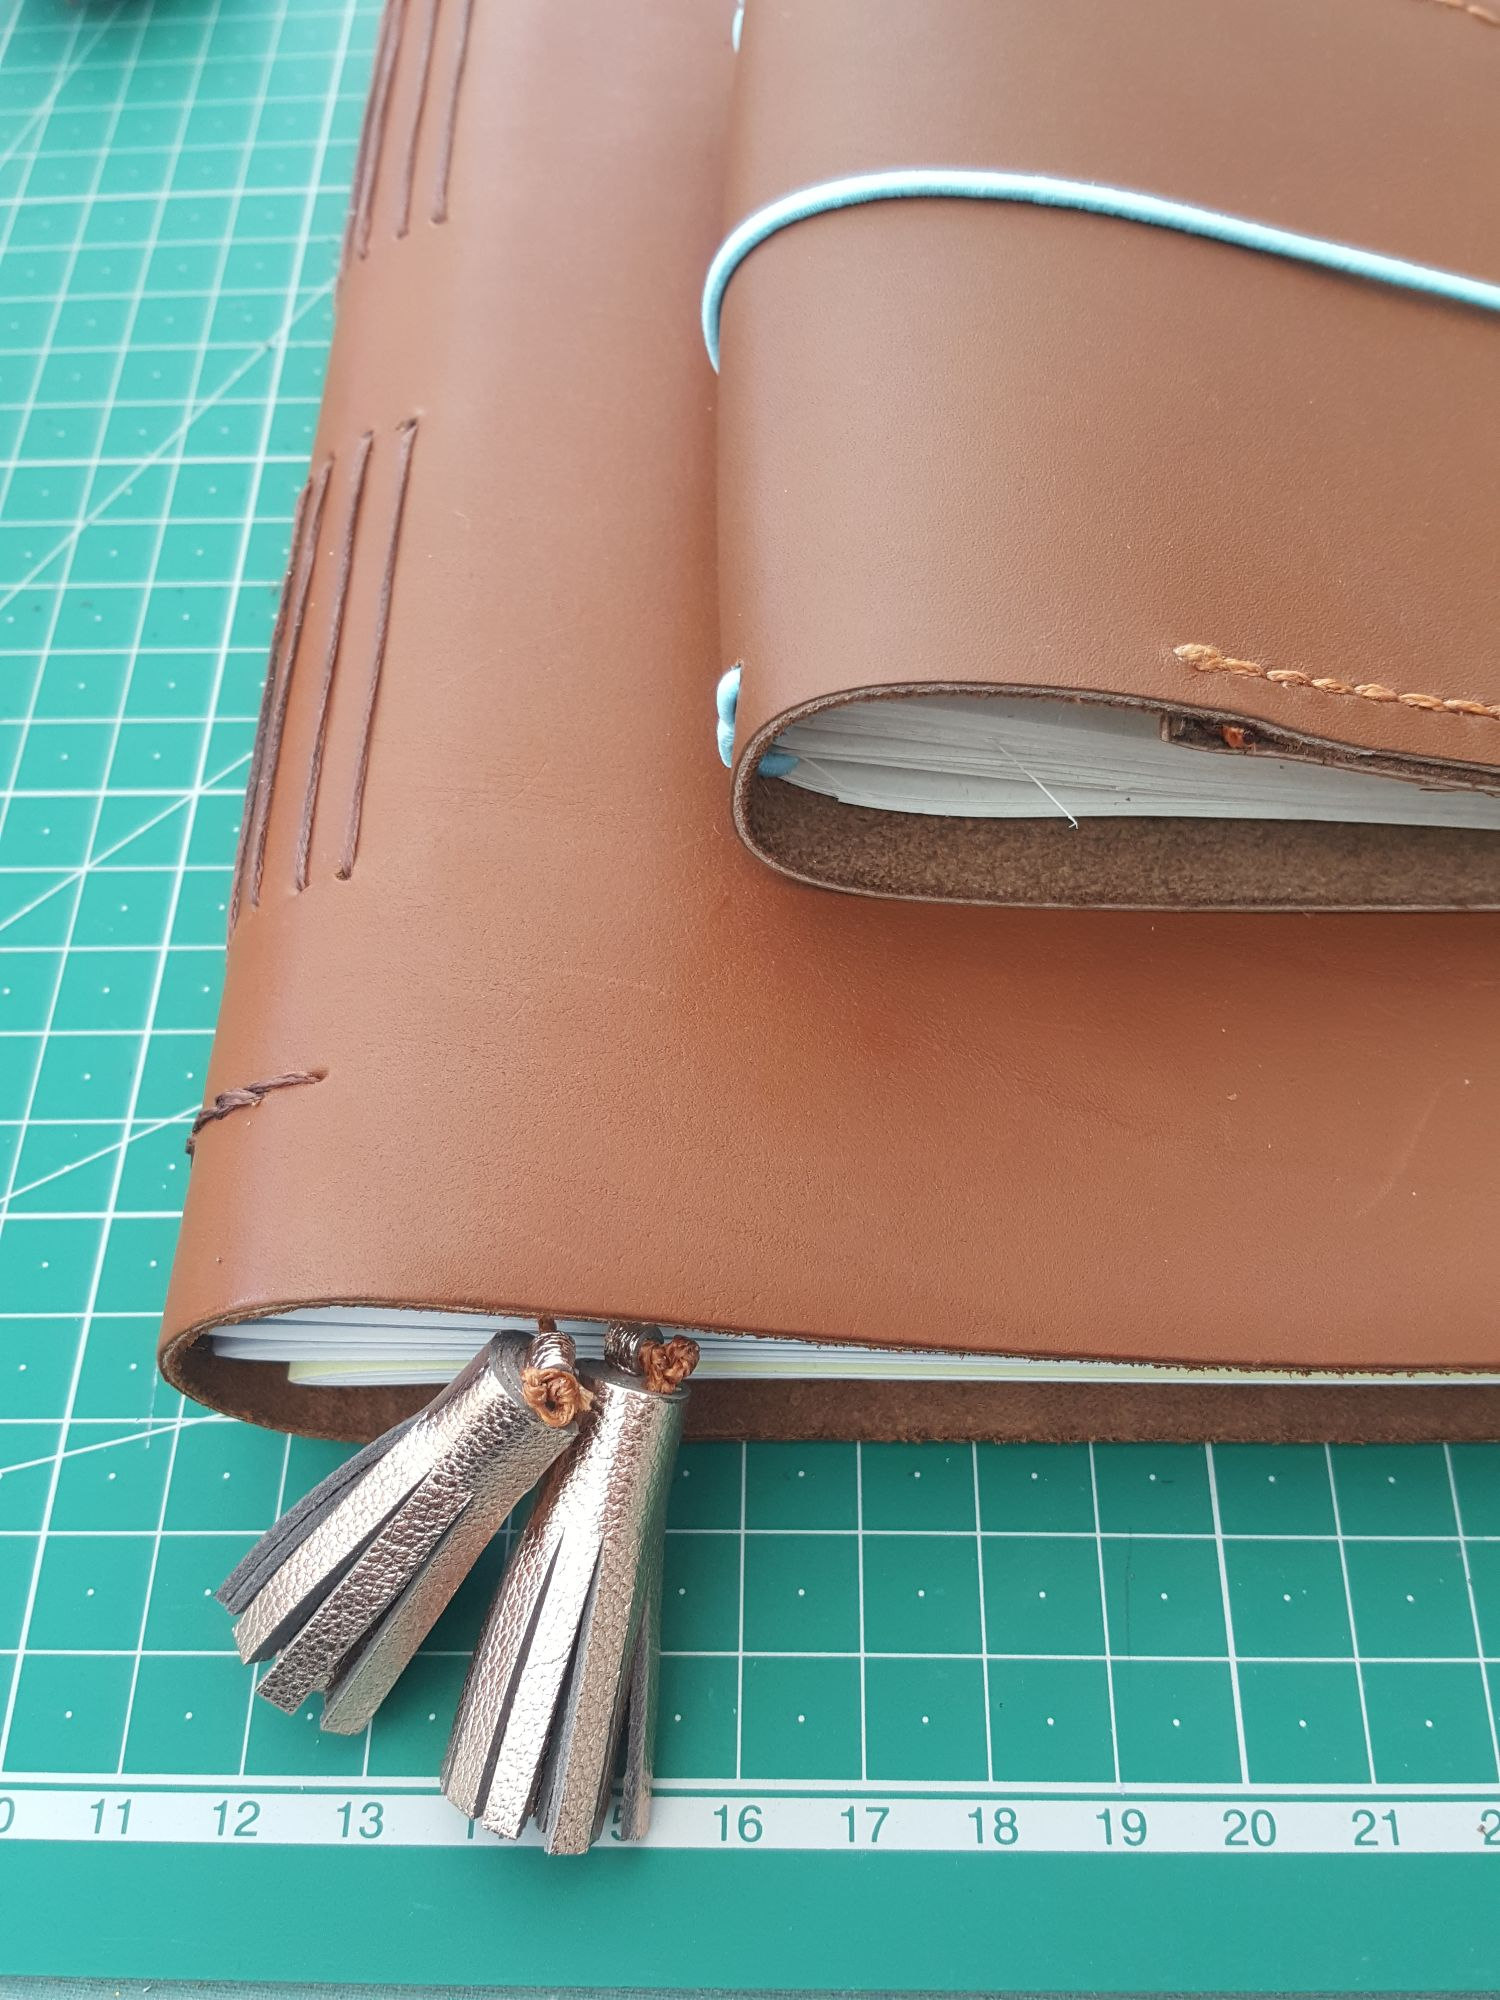 felt and leather tablet case